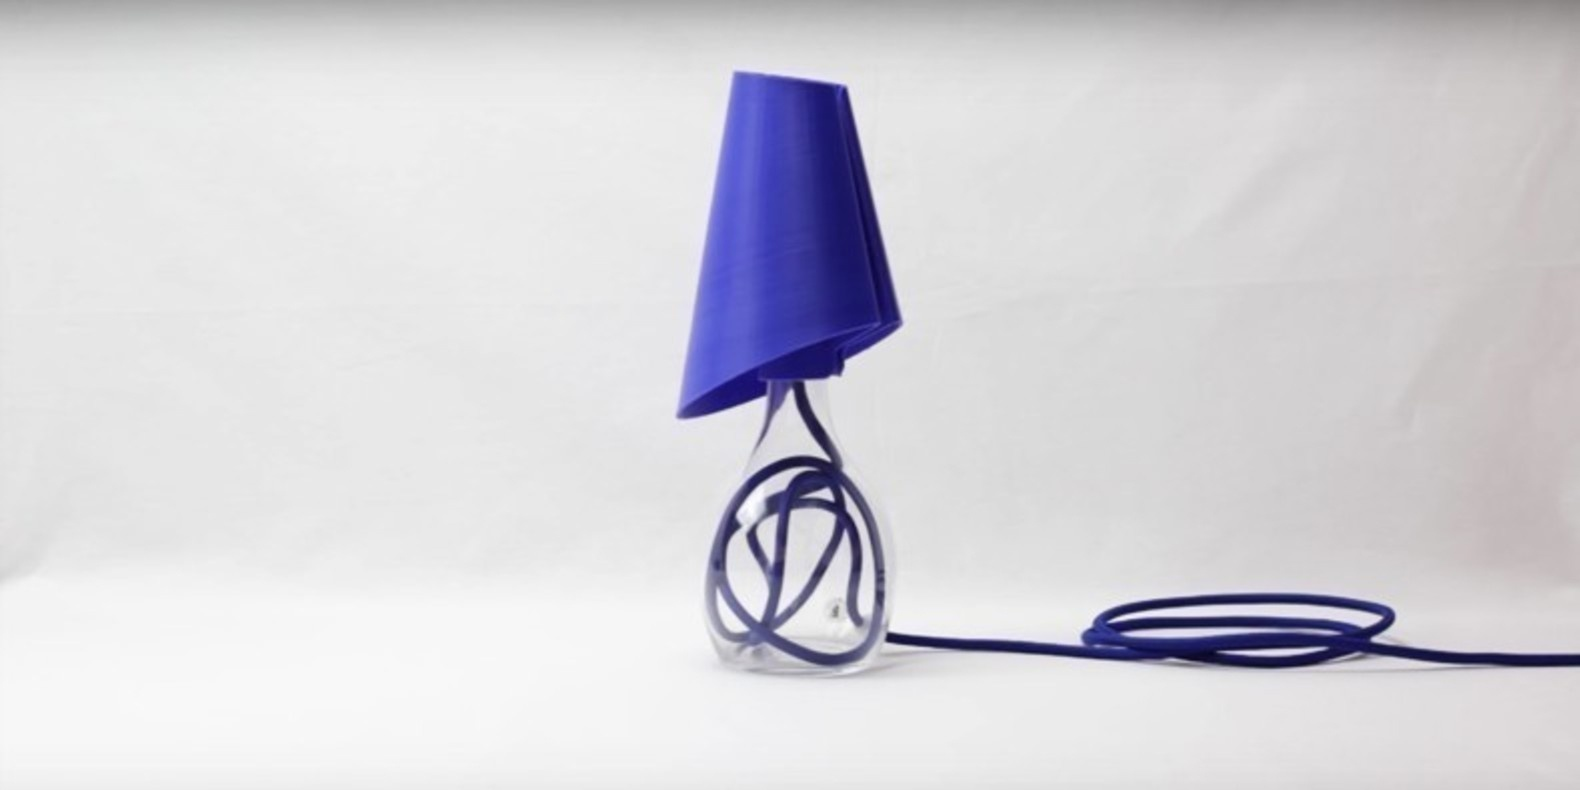 Download Free 3D Print Models Of The Best Ikea Hacks • Collection - Free 3D Printable Models